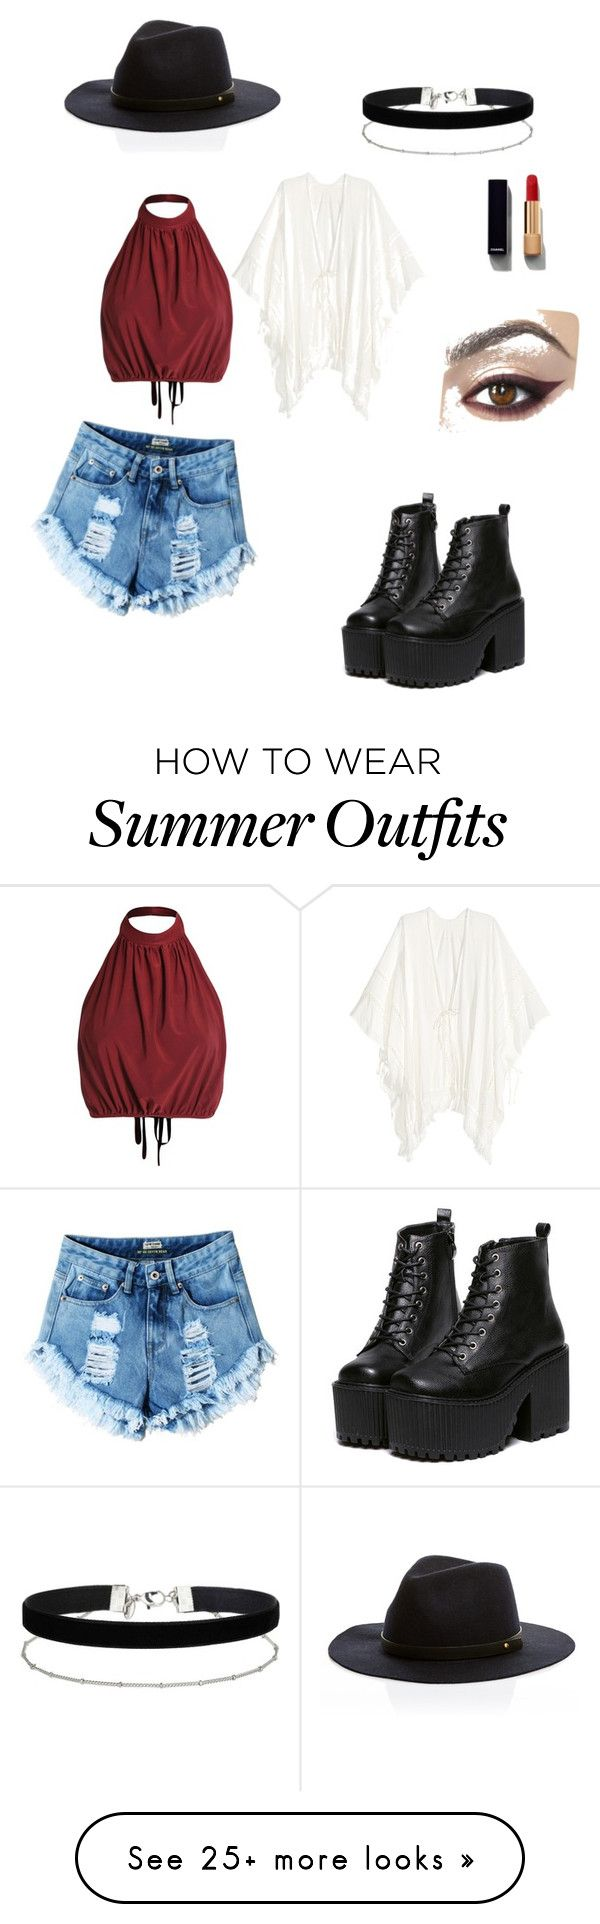 """Summer outfit"" by the-styleswot on Polyvore featuring Miss Selfridge and Chanel"